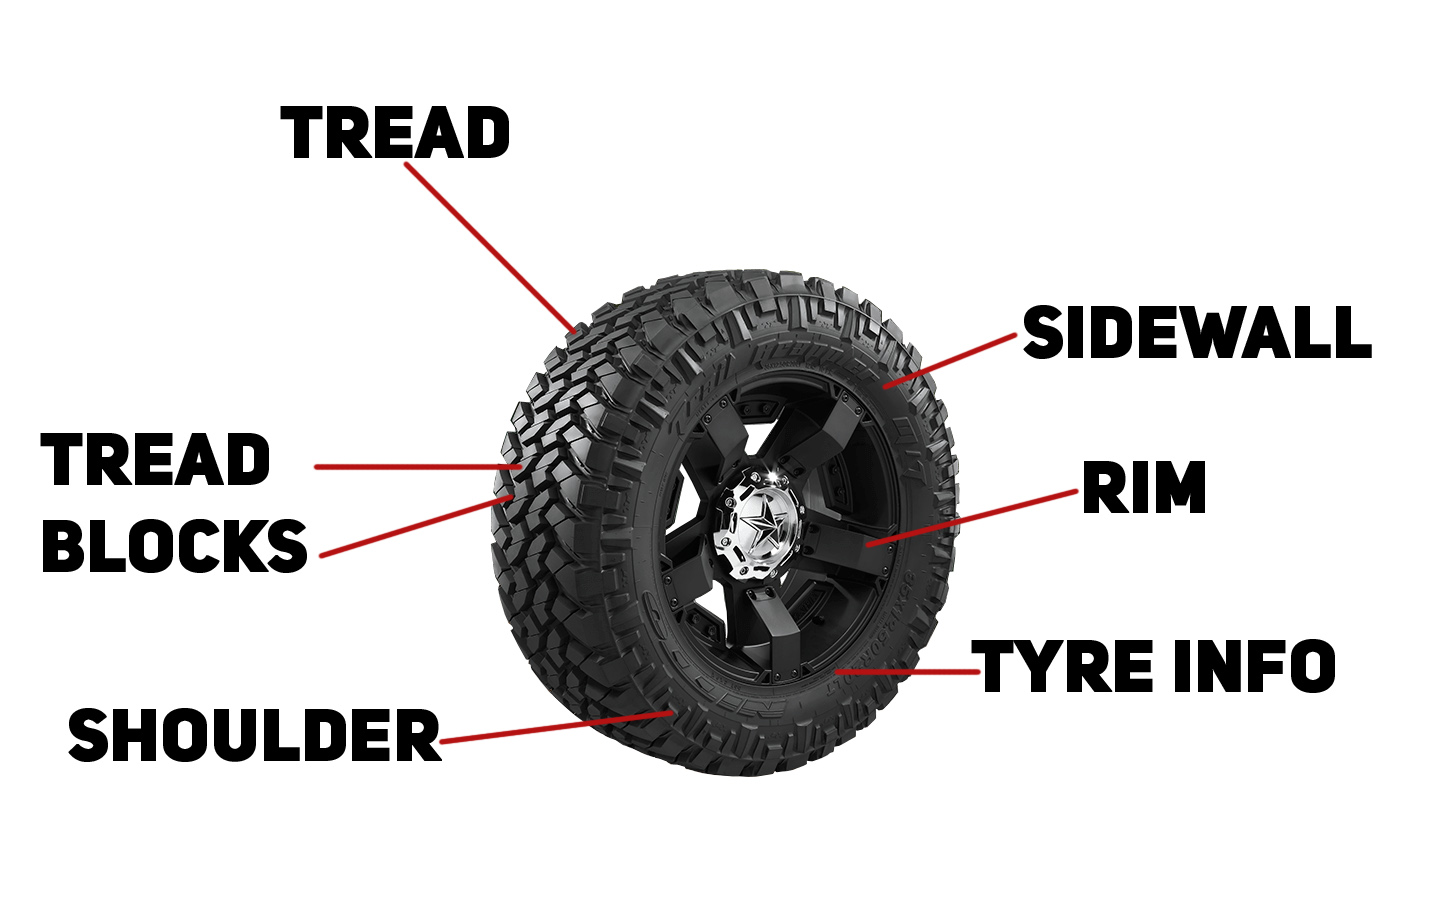 hight resolution of a labelled diagram of a nitto trail grappler tyre